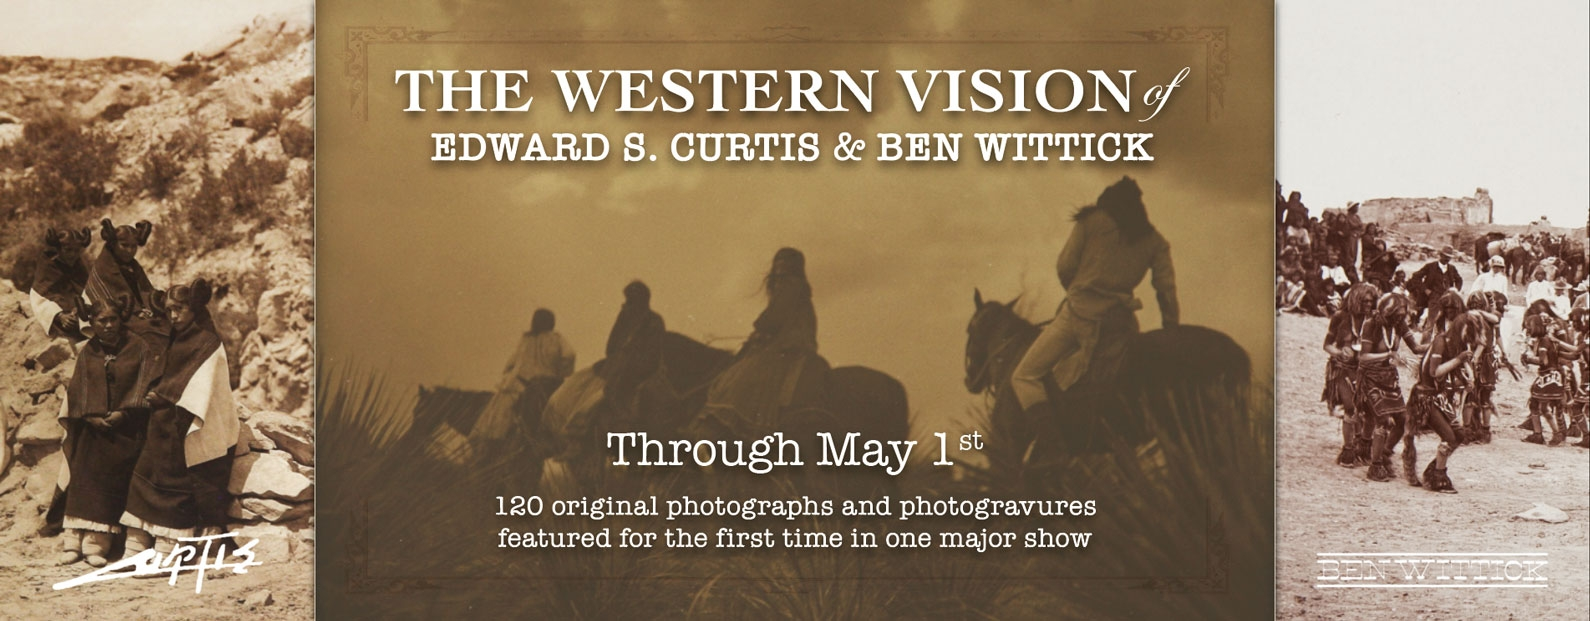 The Western Vision of Edward S. Curtis & Ben Wittick